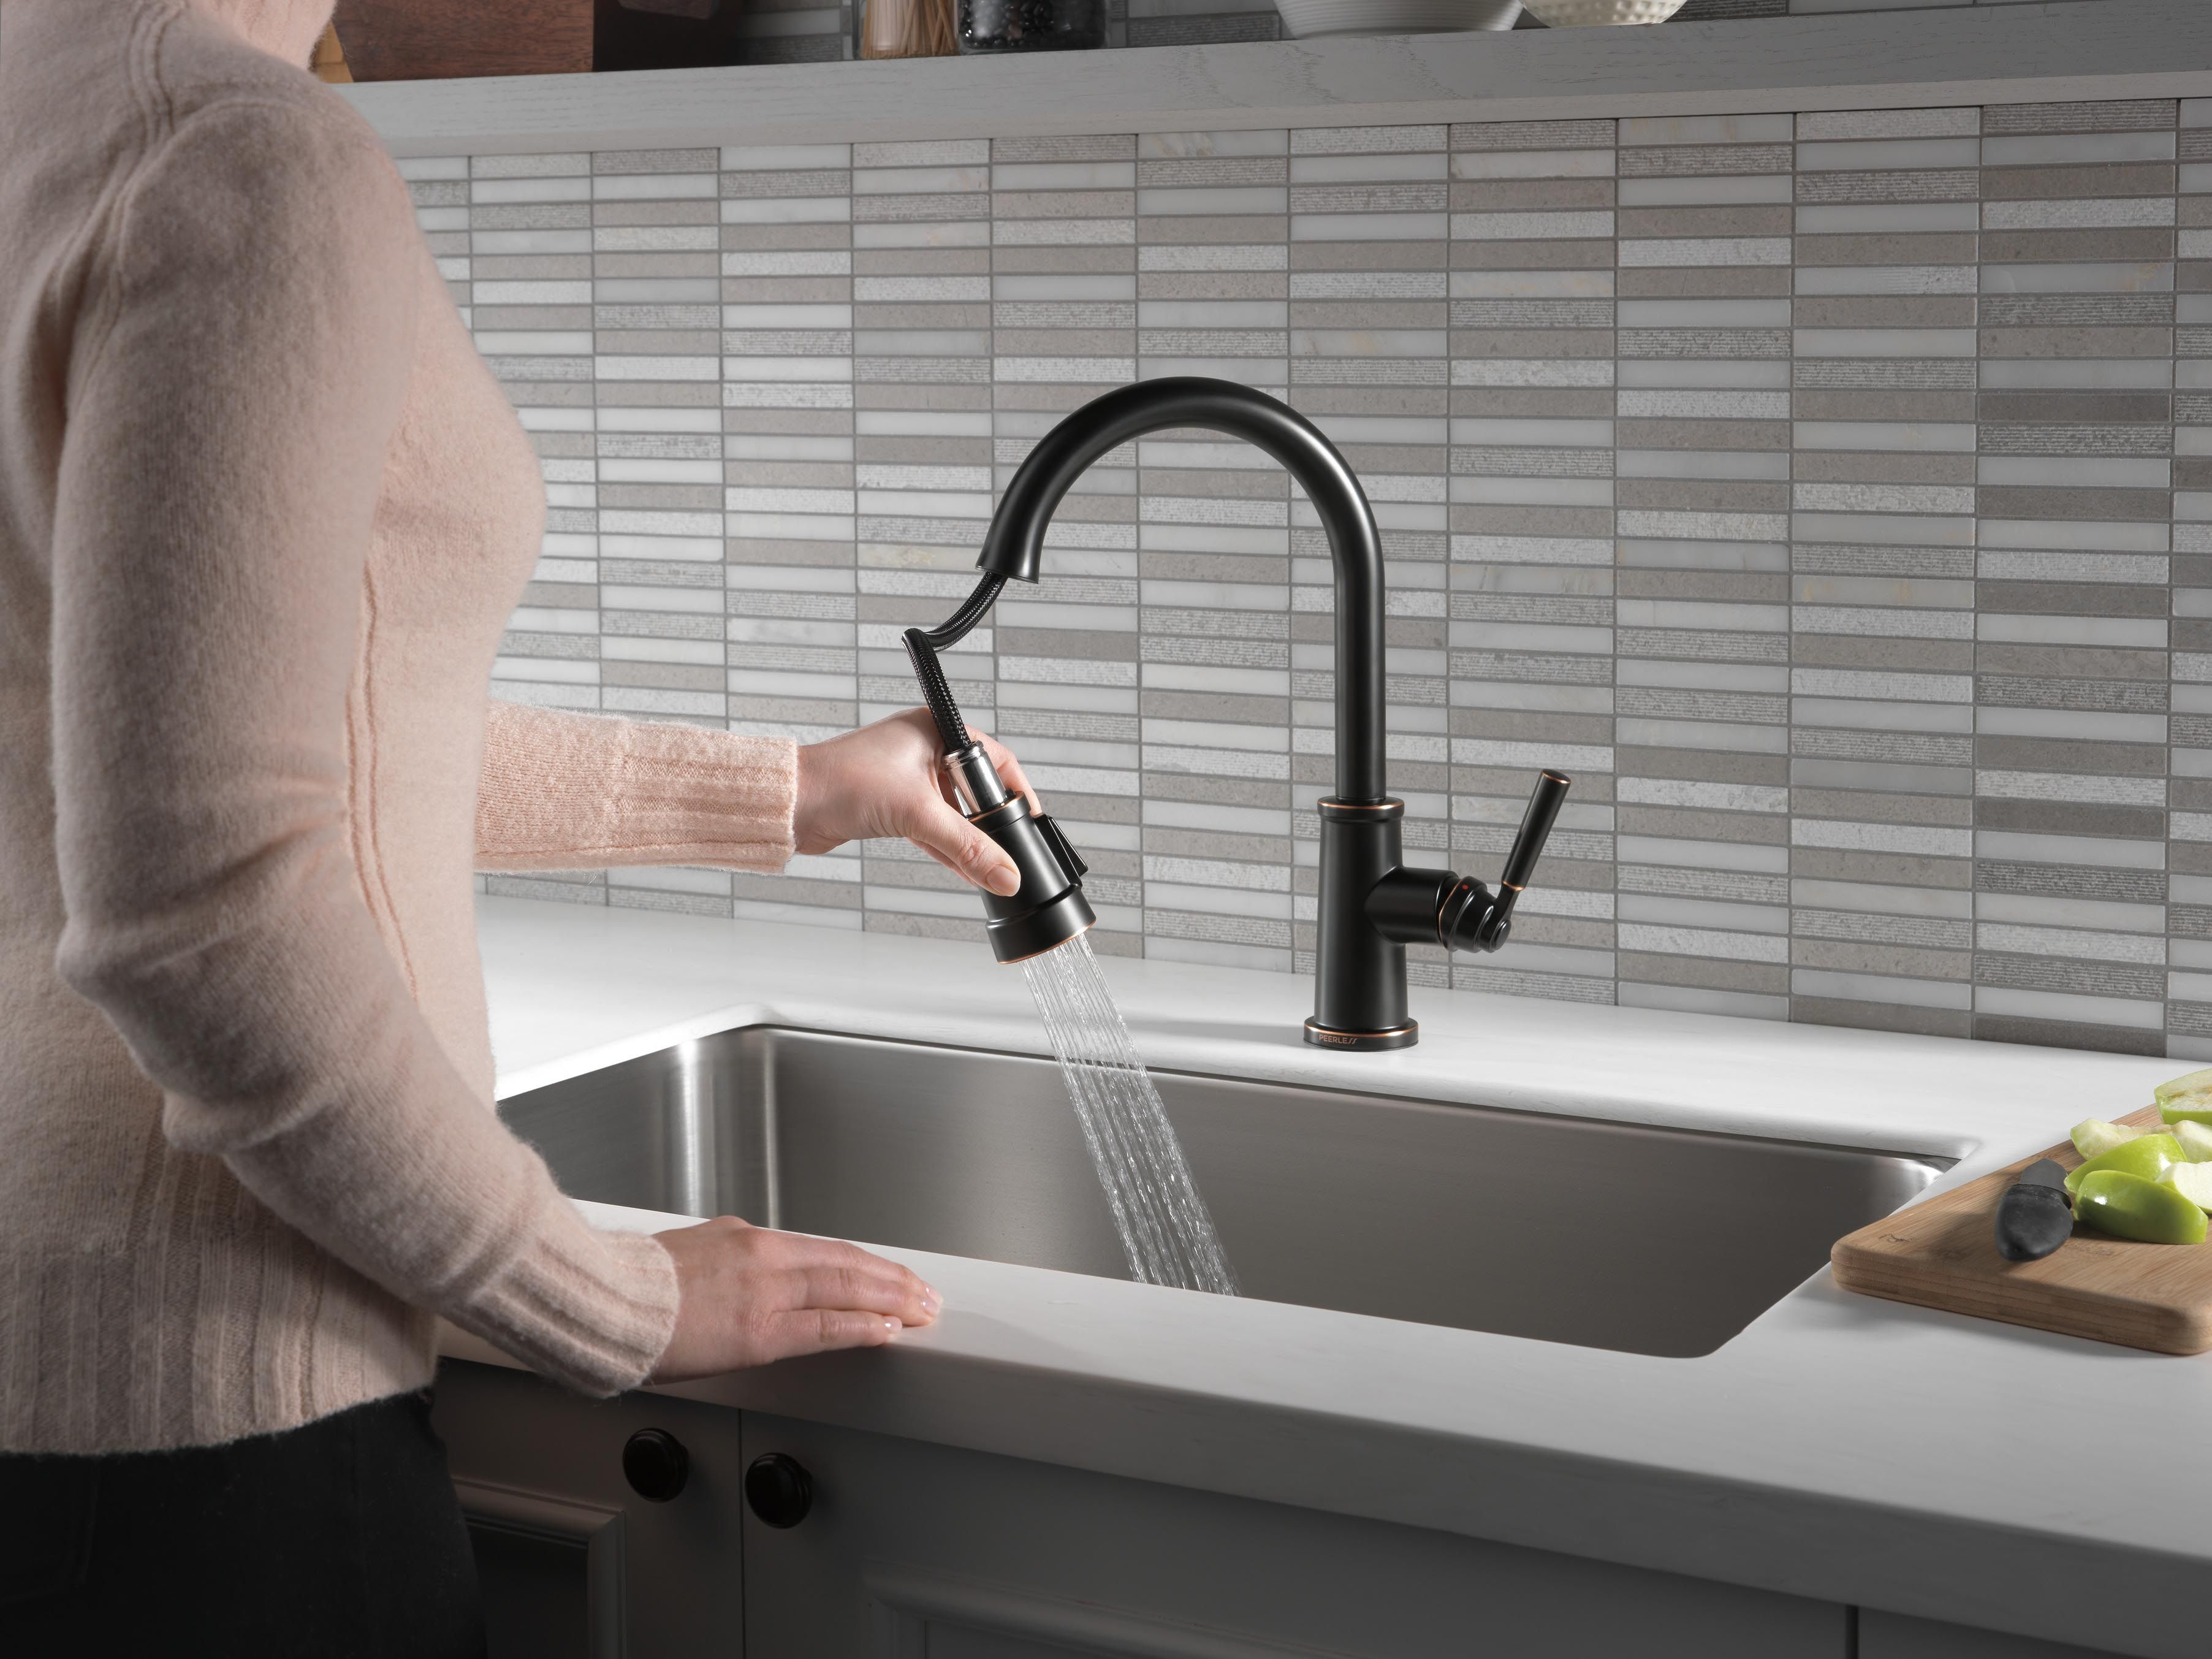 Peerless Faucet P7923lf Ob Single Handle Pull Down Kitchen Faucet